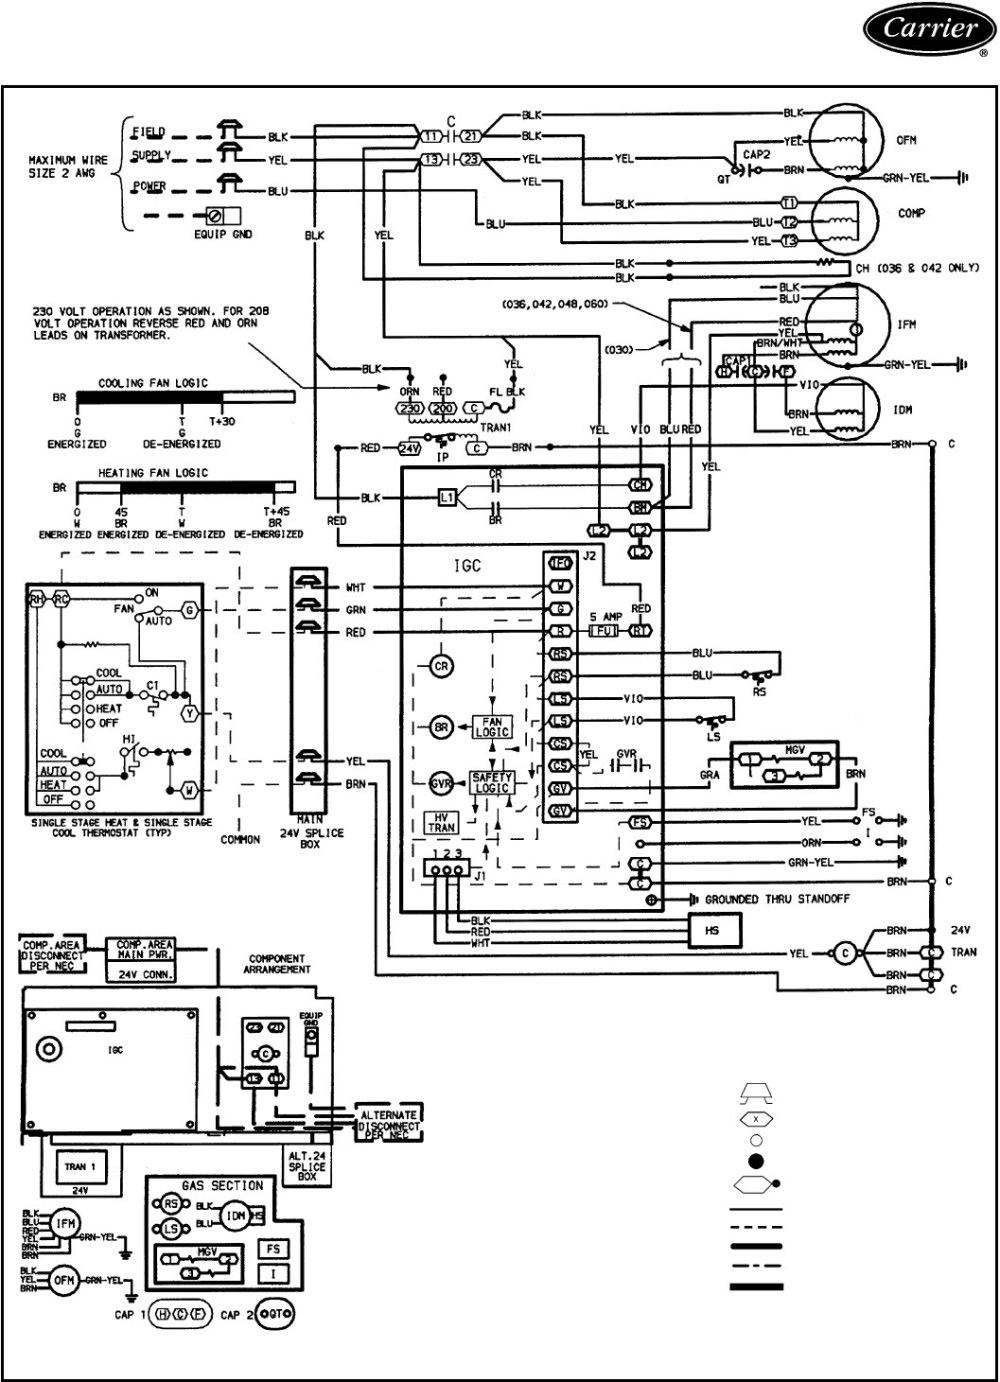 medium resolution of carrier infinity 98 furnace installation manual user guide manual tempstar gas furnace wiring diagram carrier 58sta